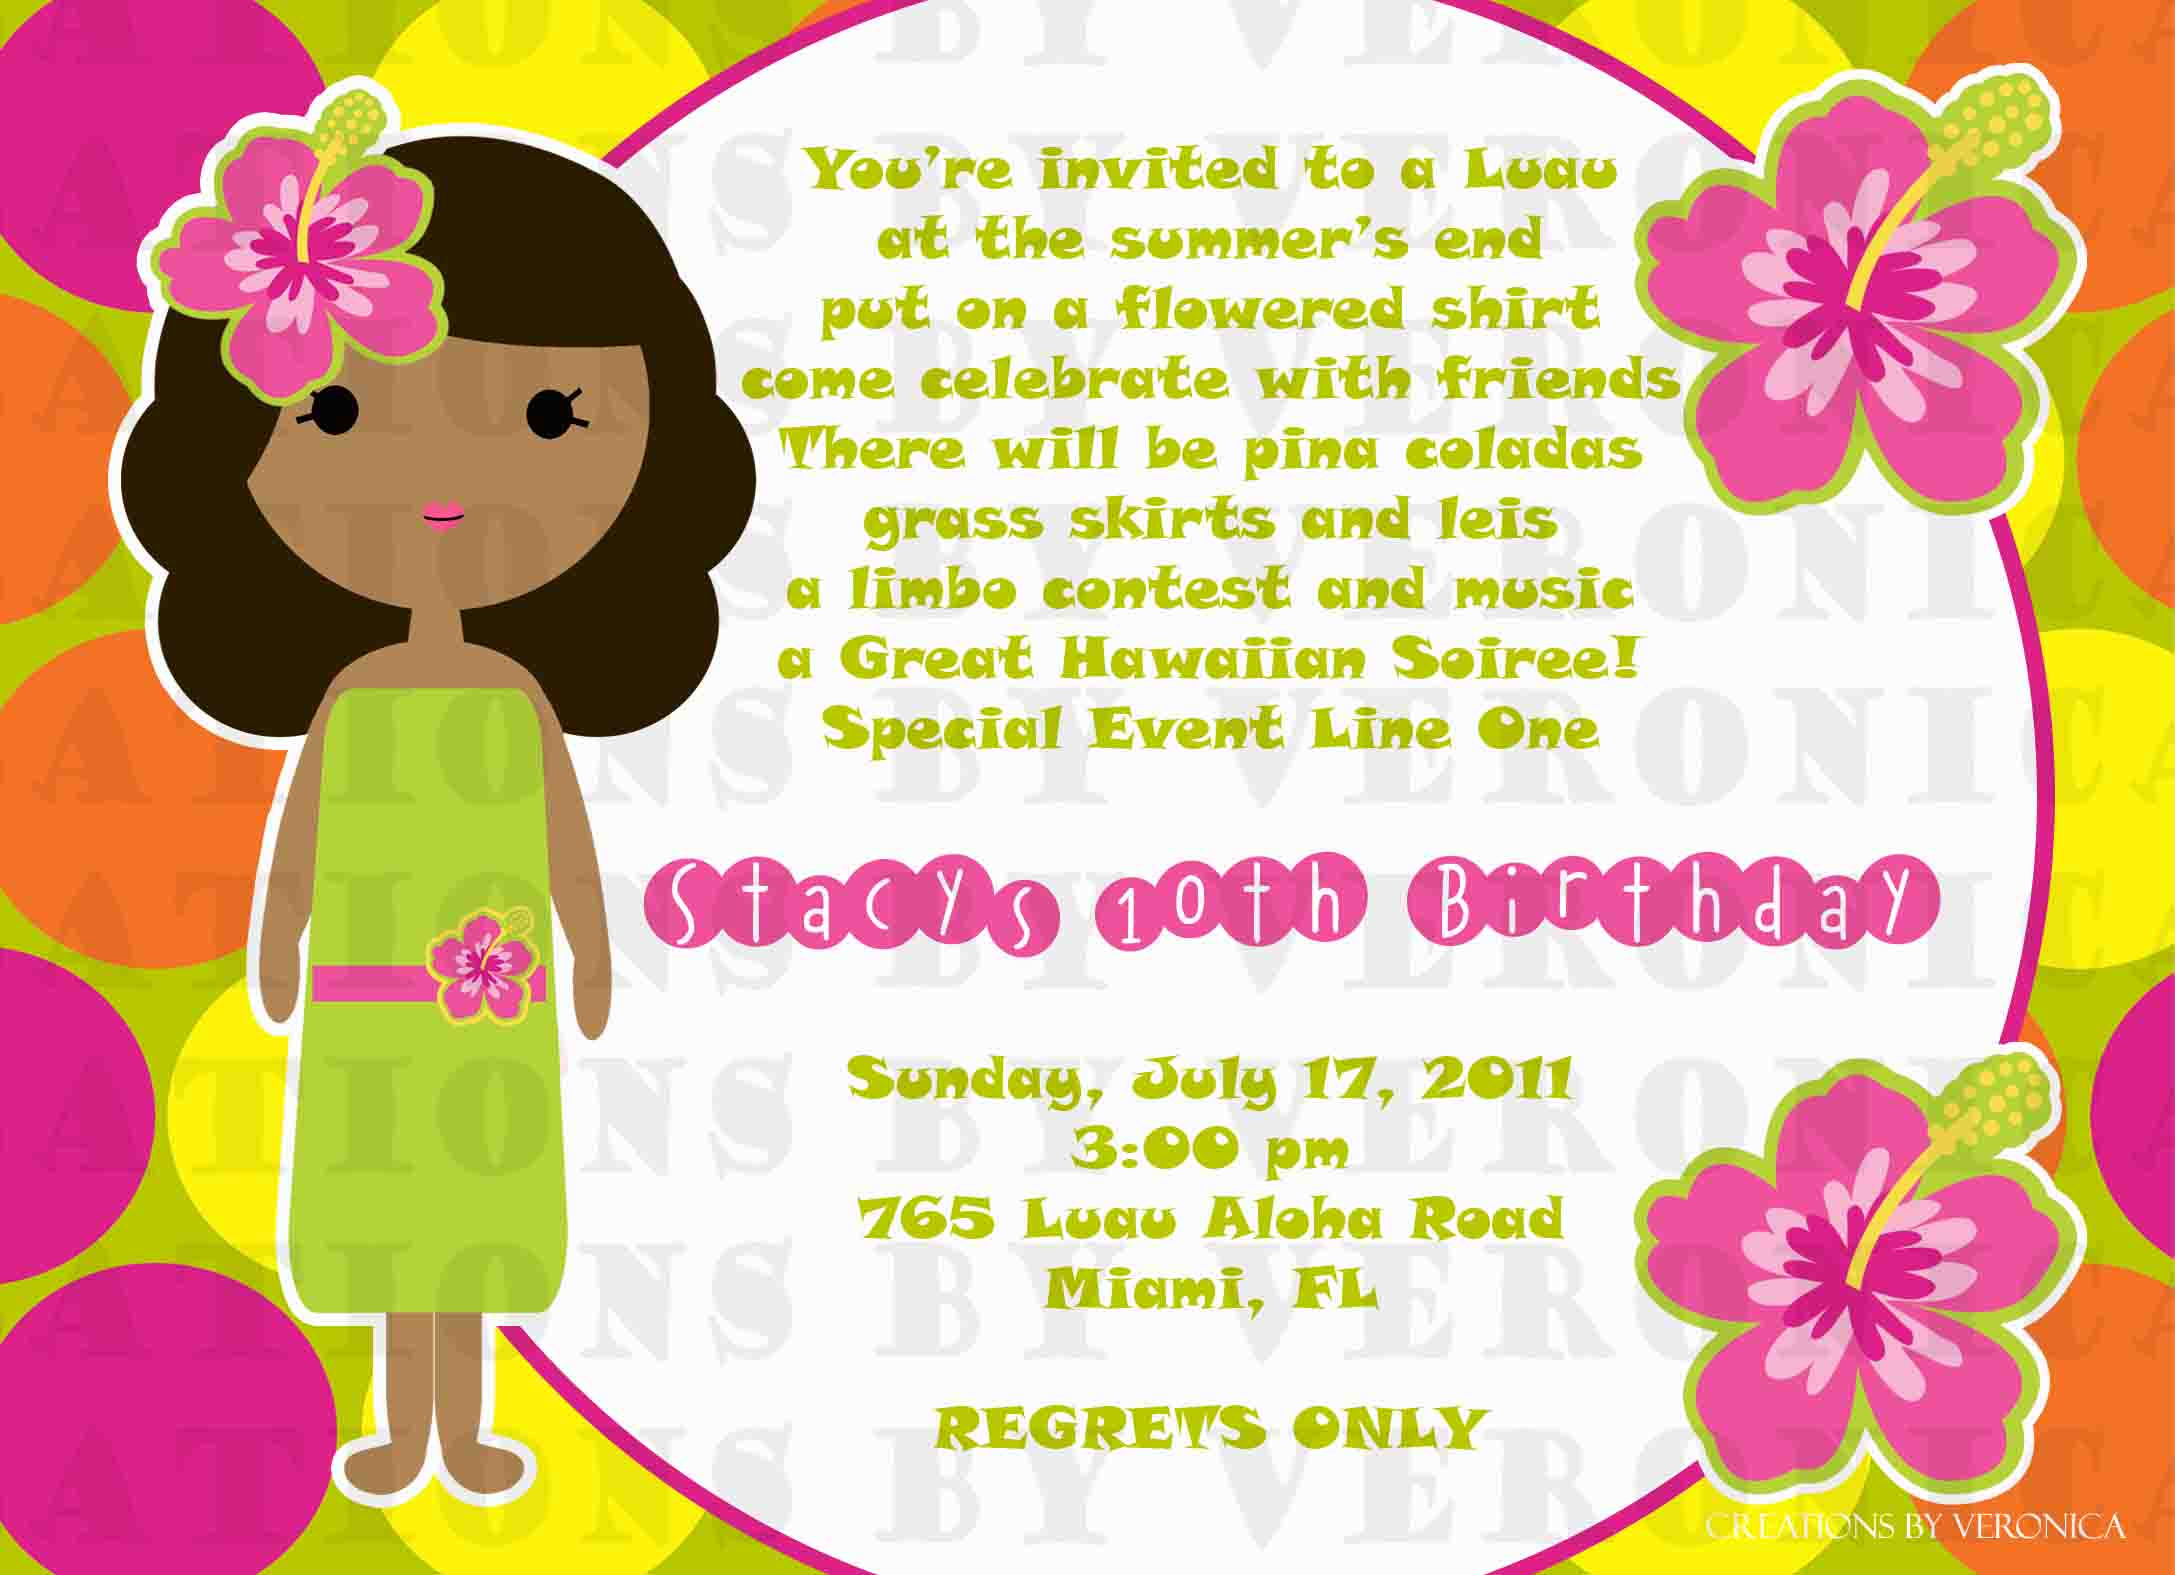 Luau Party Invitation Wording Werewolf Halloween Decorations